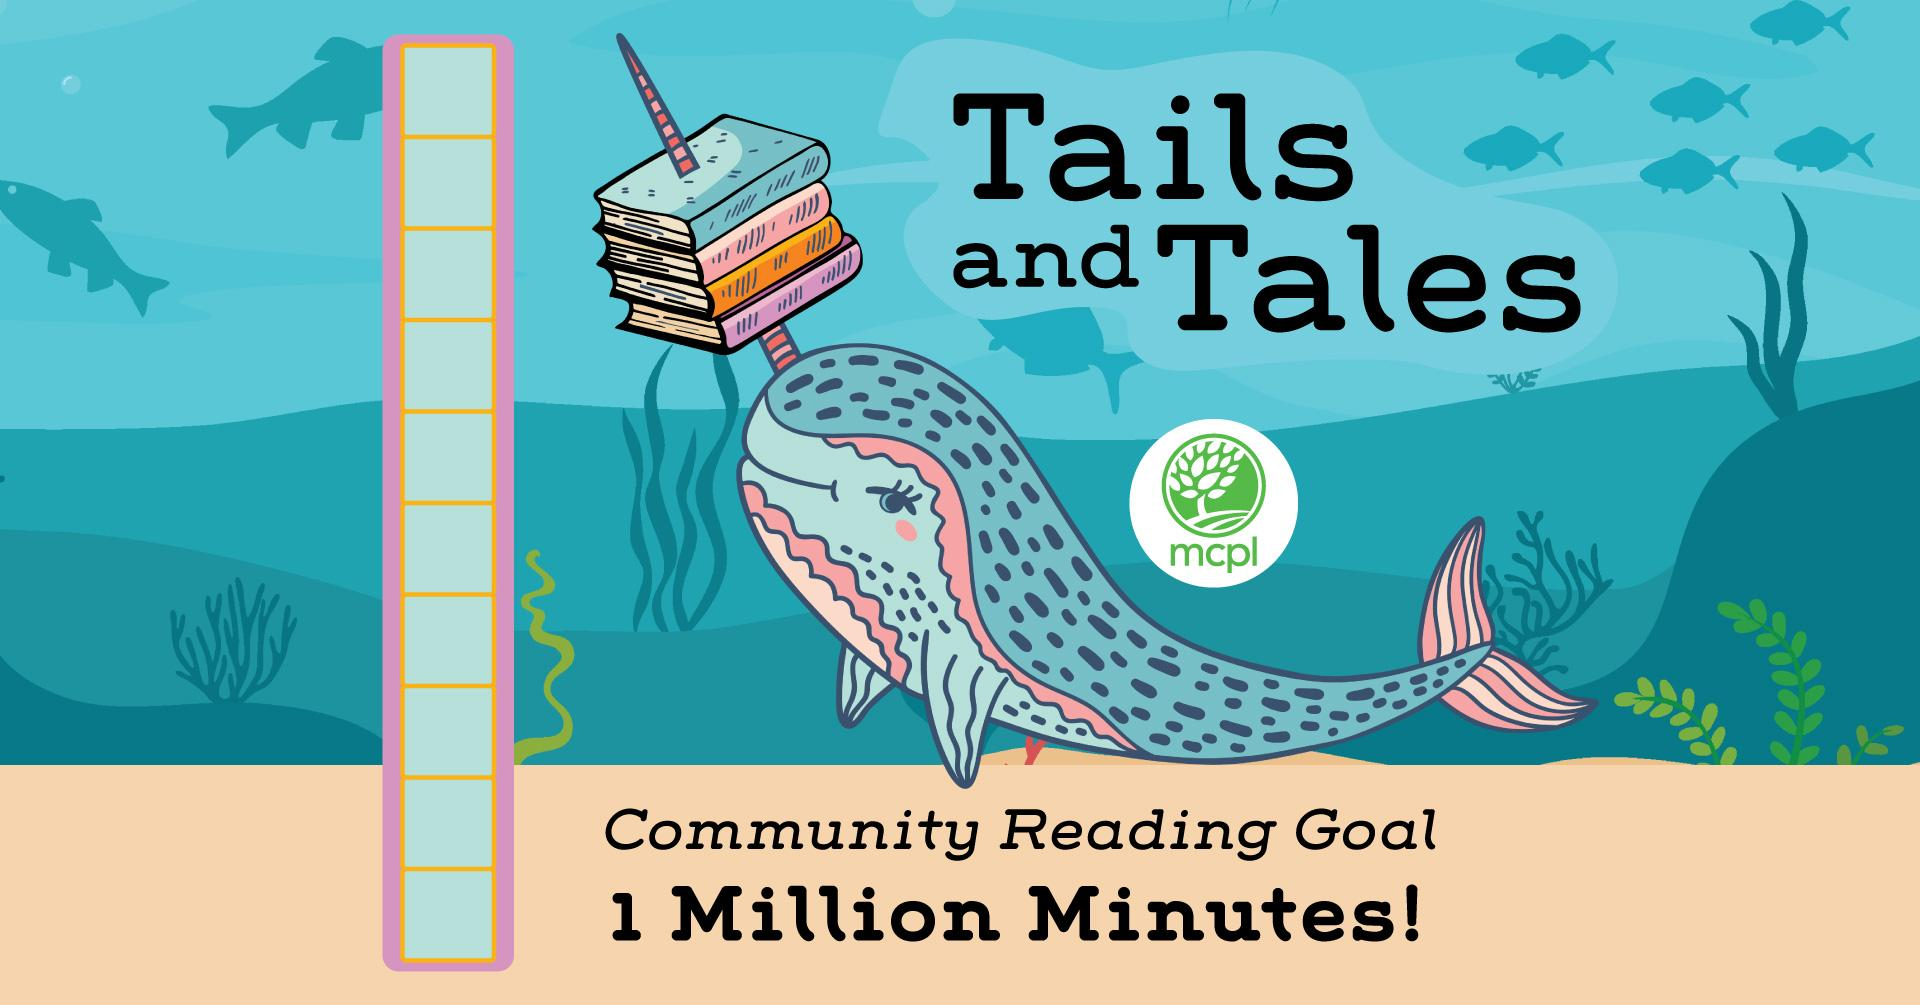 Tails and Tales Community Reading Goal 1 Million Minutes